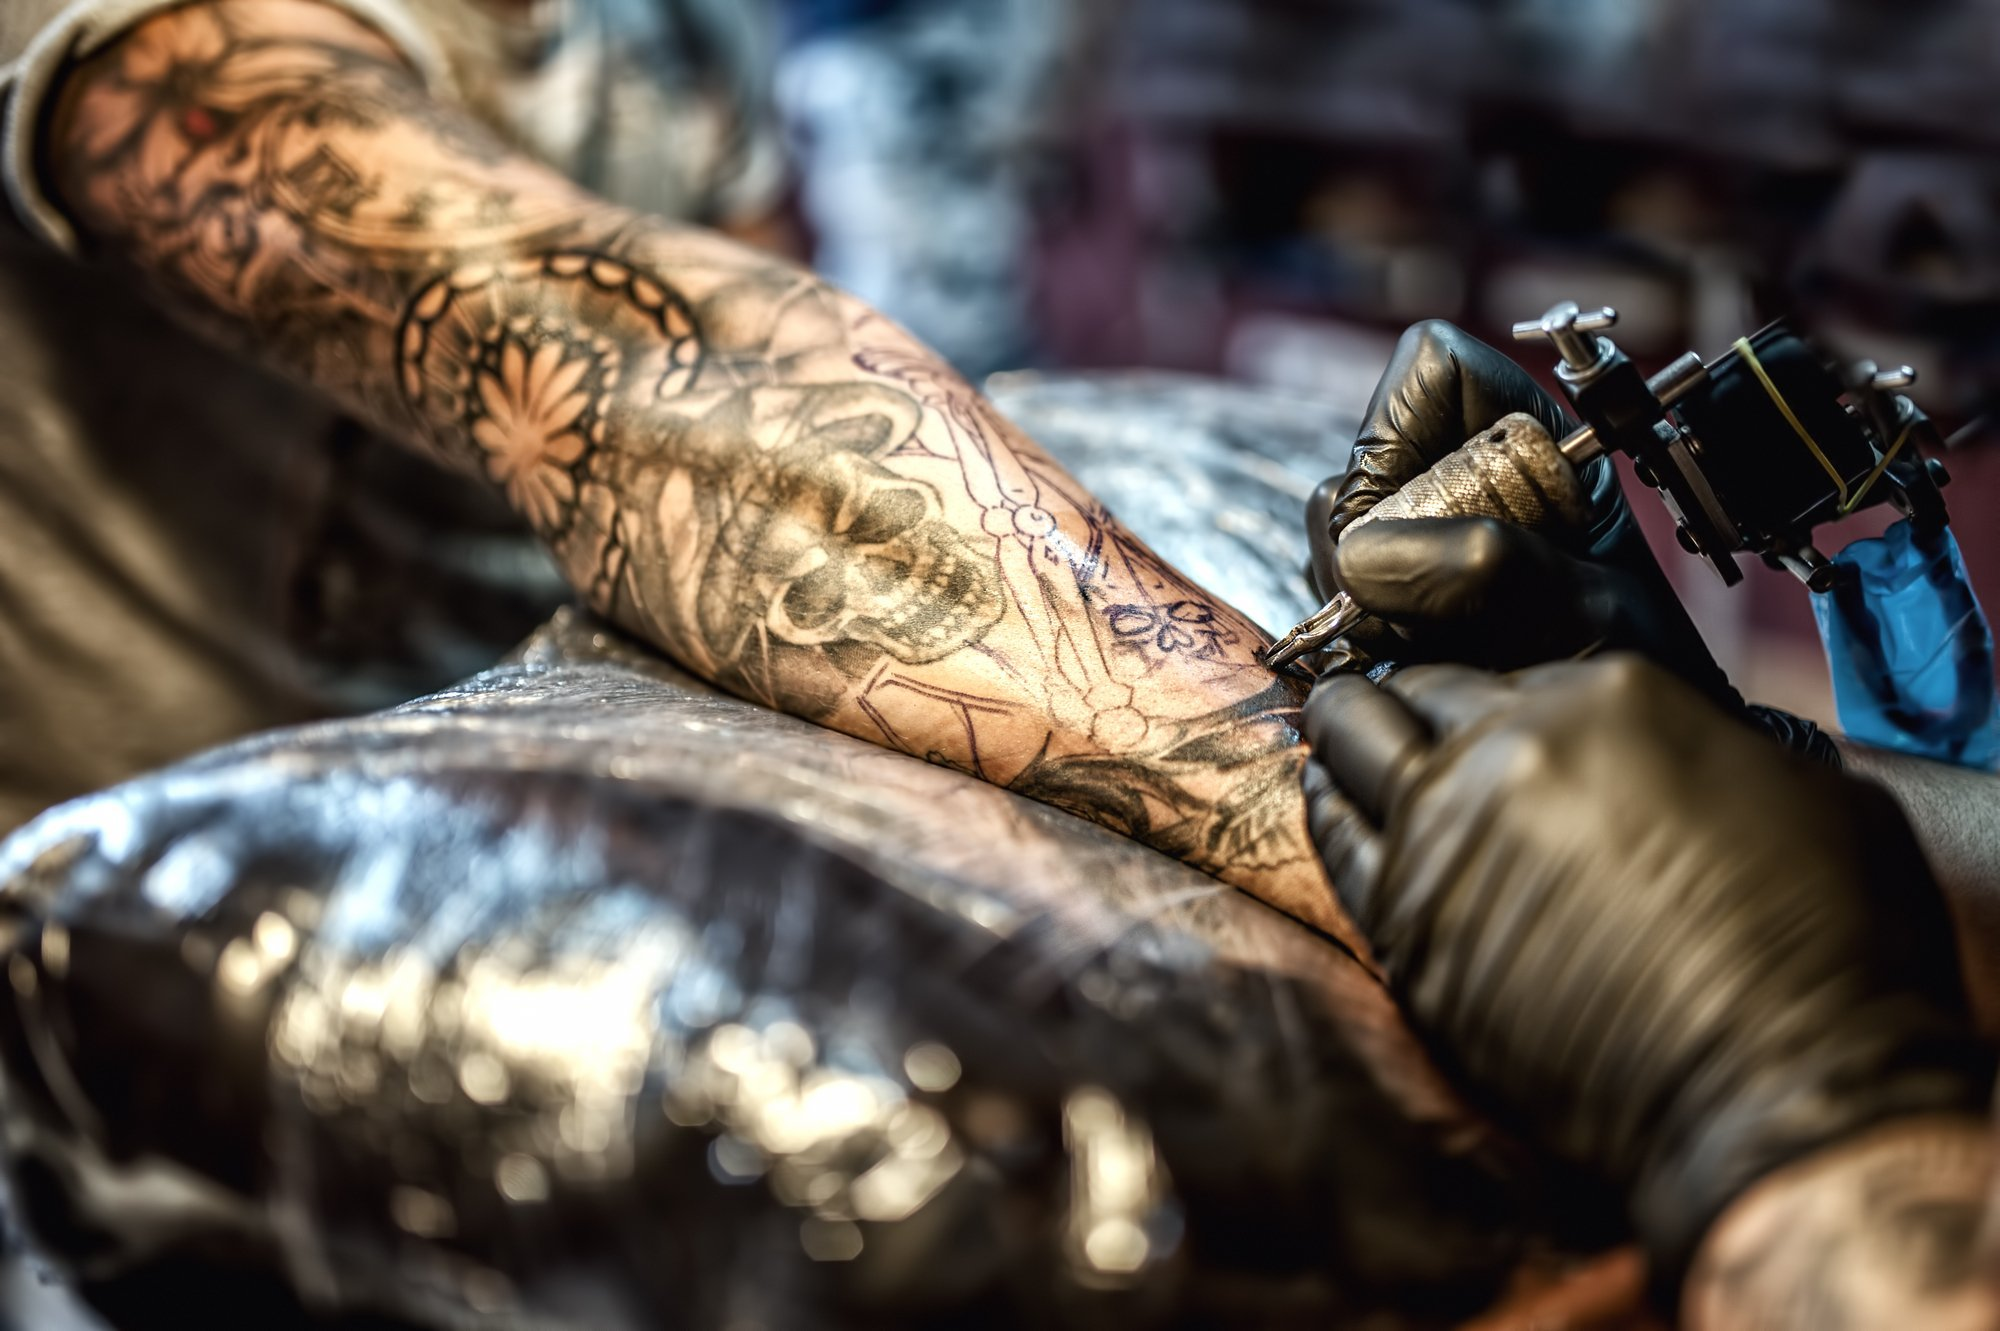 tattoo-artist-drawing-on-arm-and-on-skin-of-client